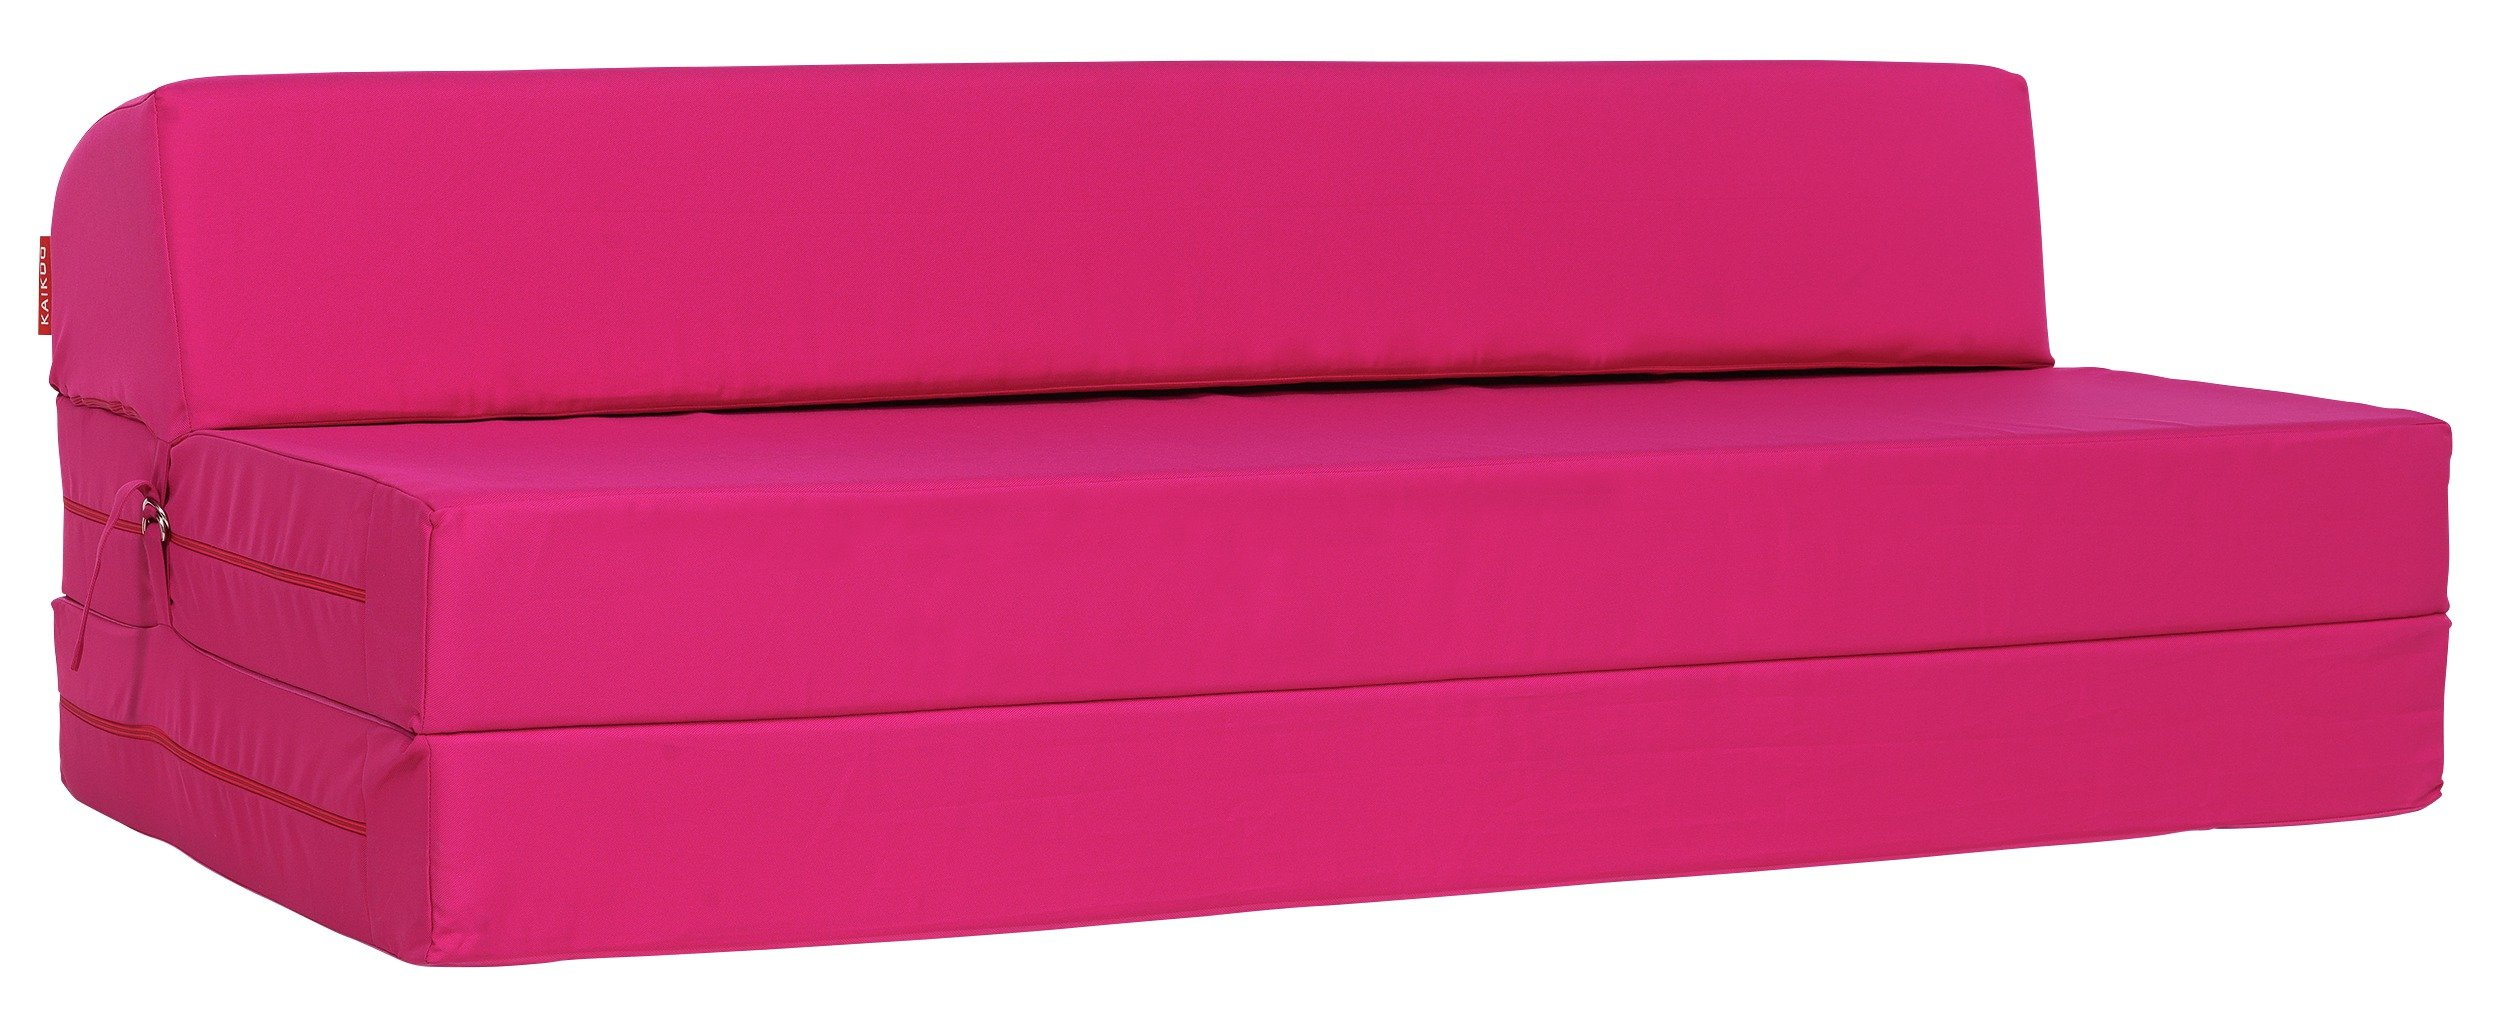 Argos Home Double Chairbed - Funky Fuchsia